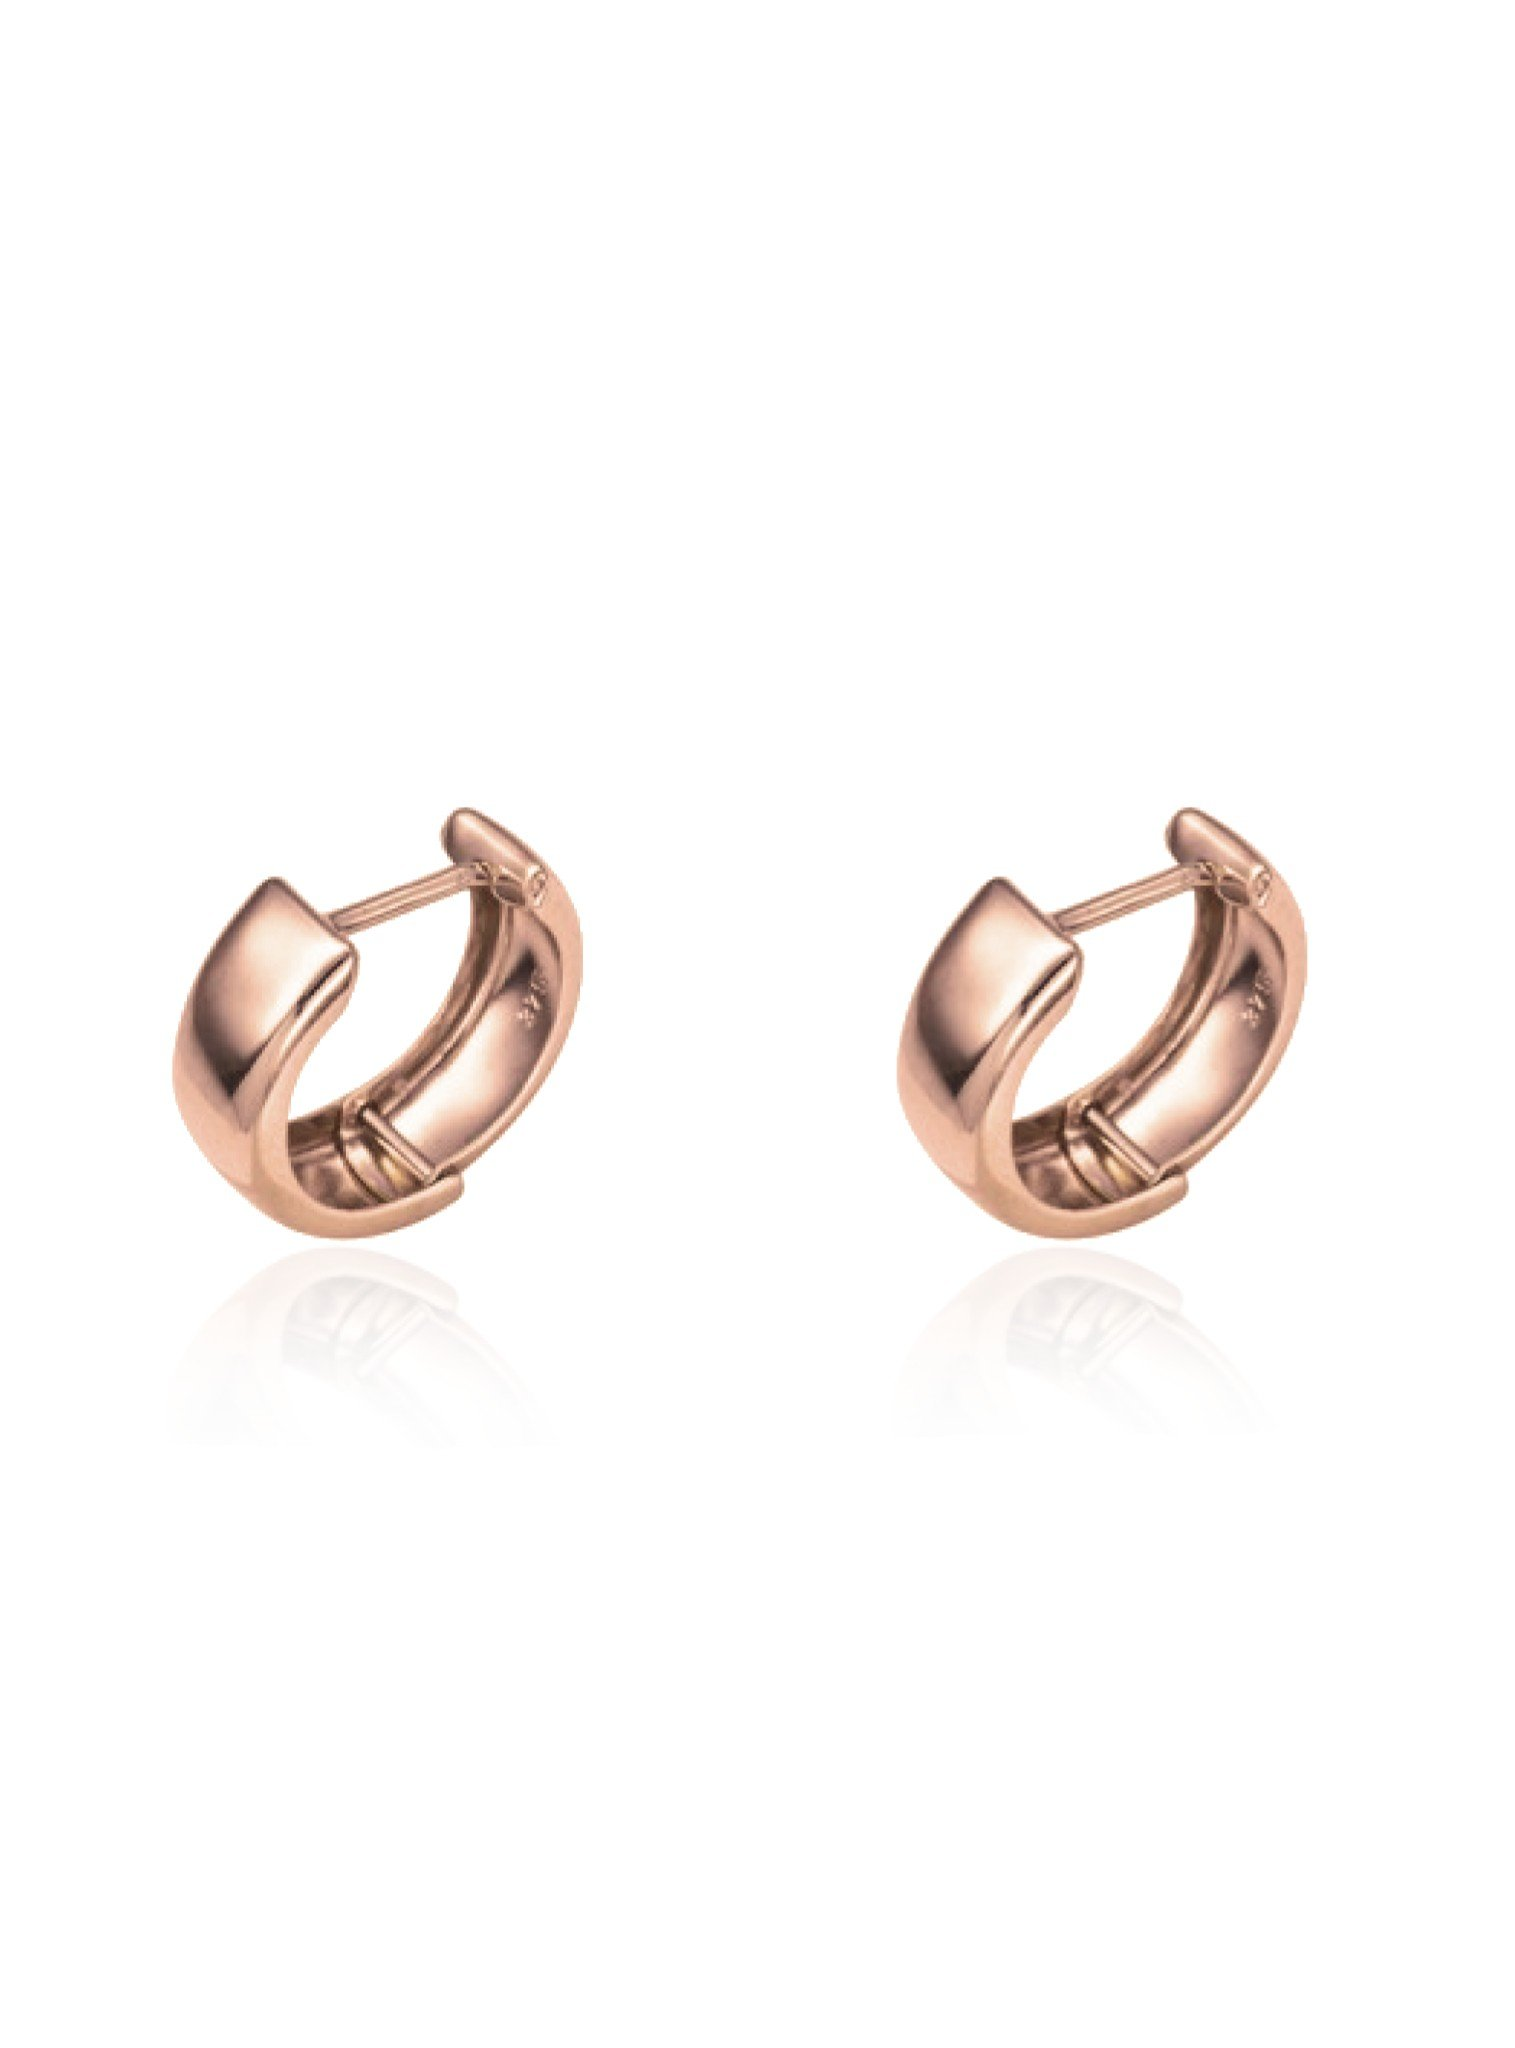 Small Huggie Hoop Earrings in 9ct Rose Gold